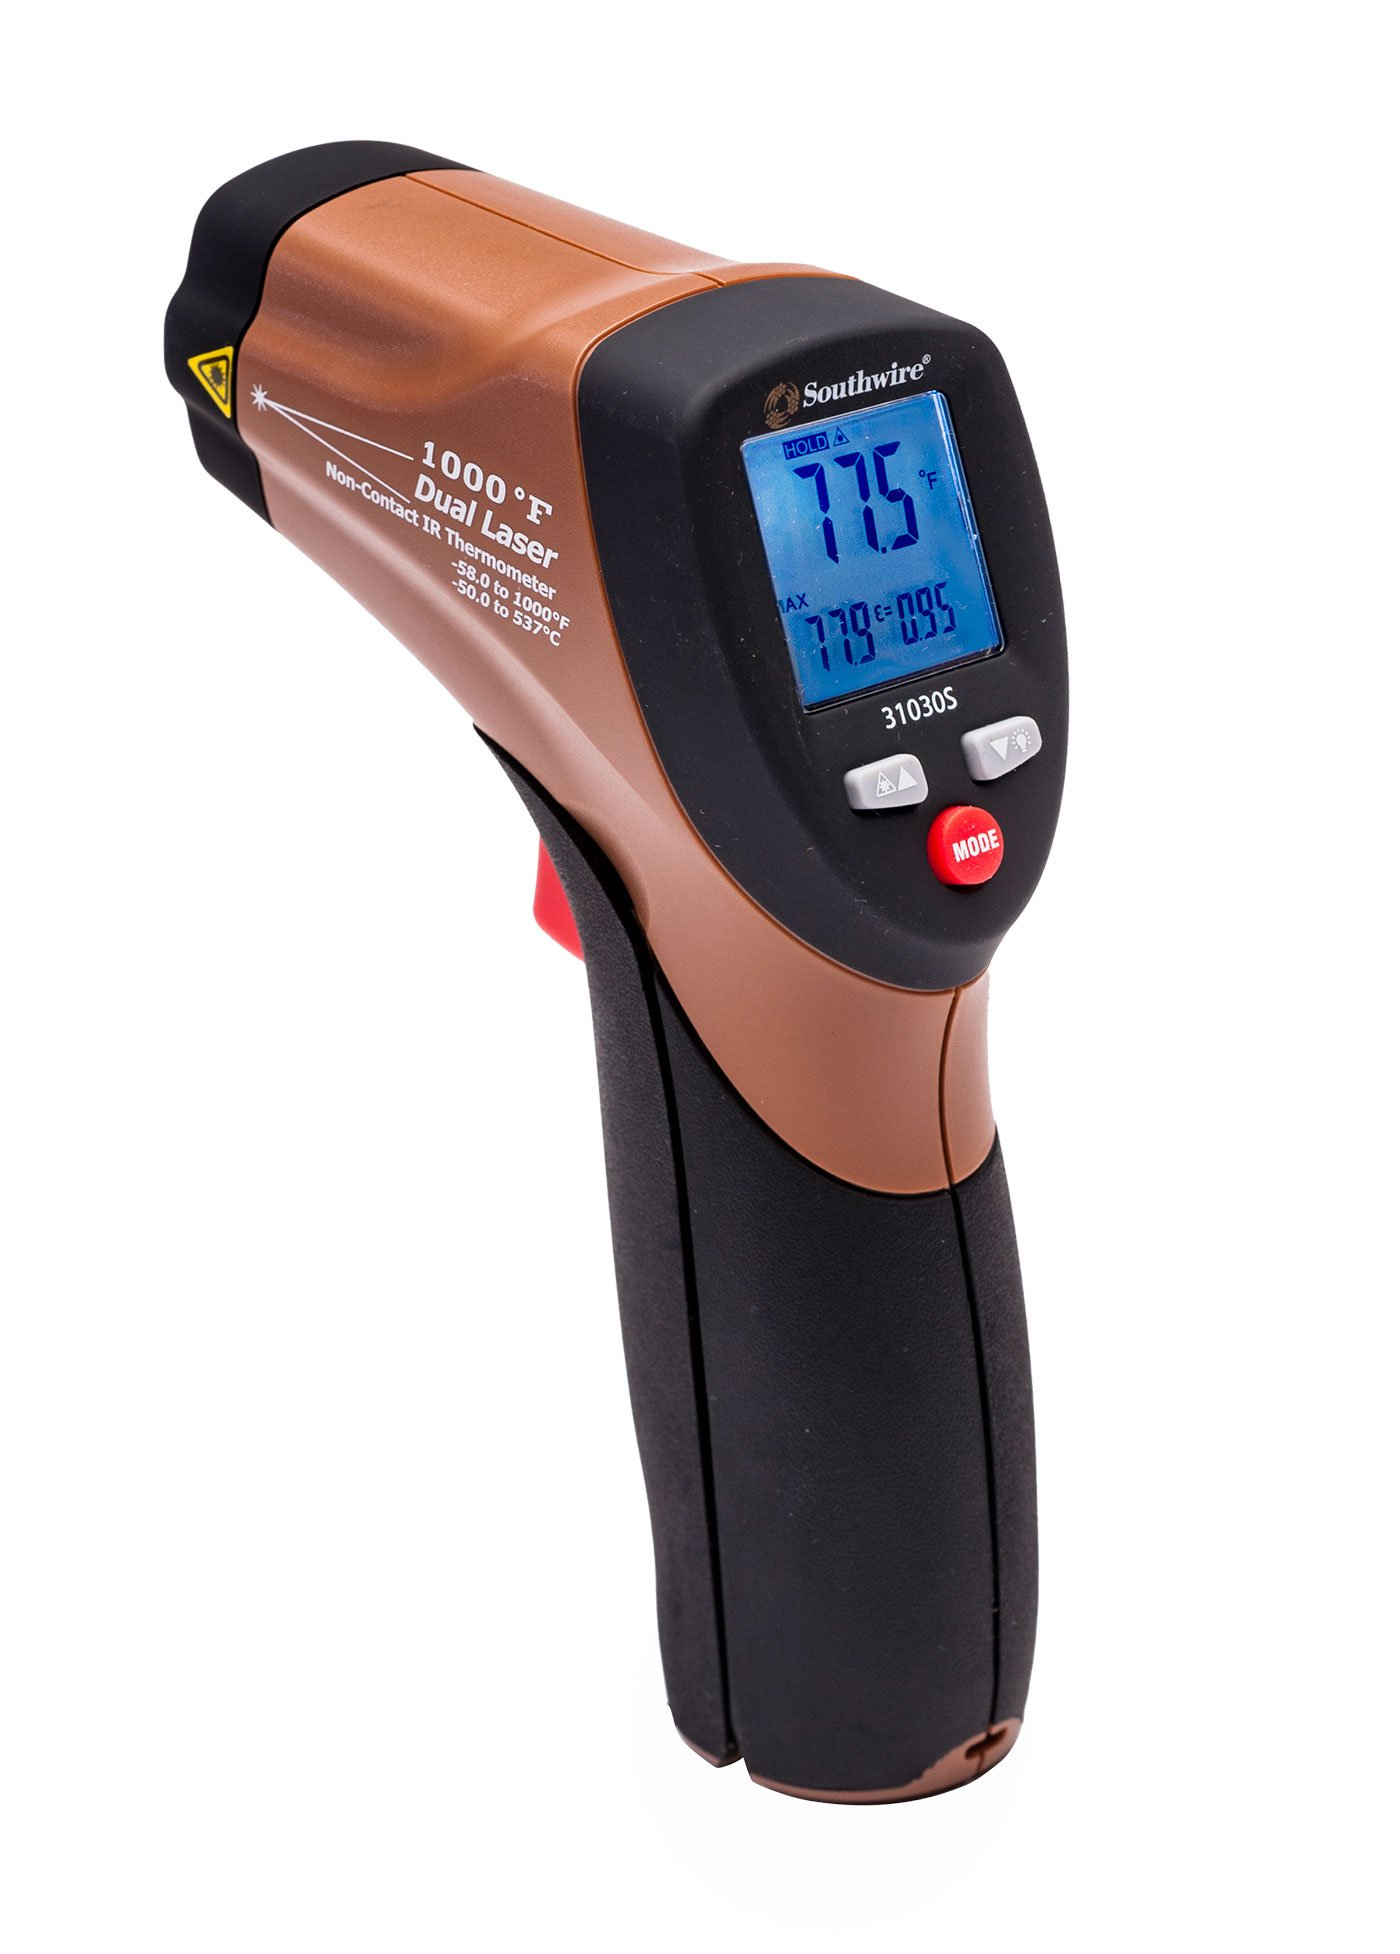 Southwire Tools & Equipment 31030S 1000°F Non Contact Digital Infrared Thermometer with Dual Lasers by Southwire